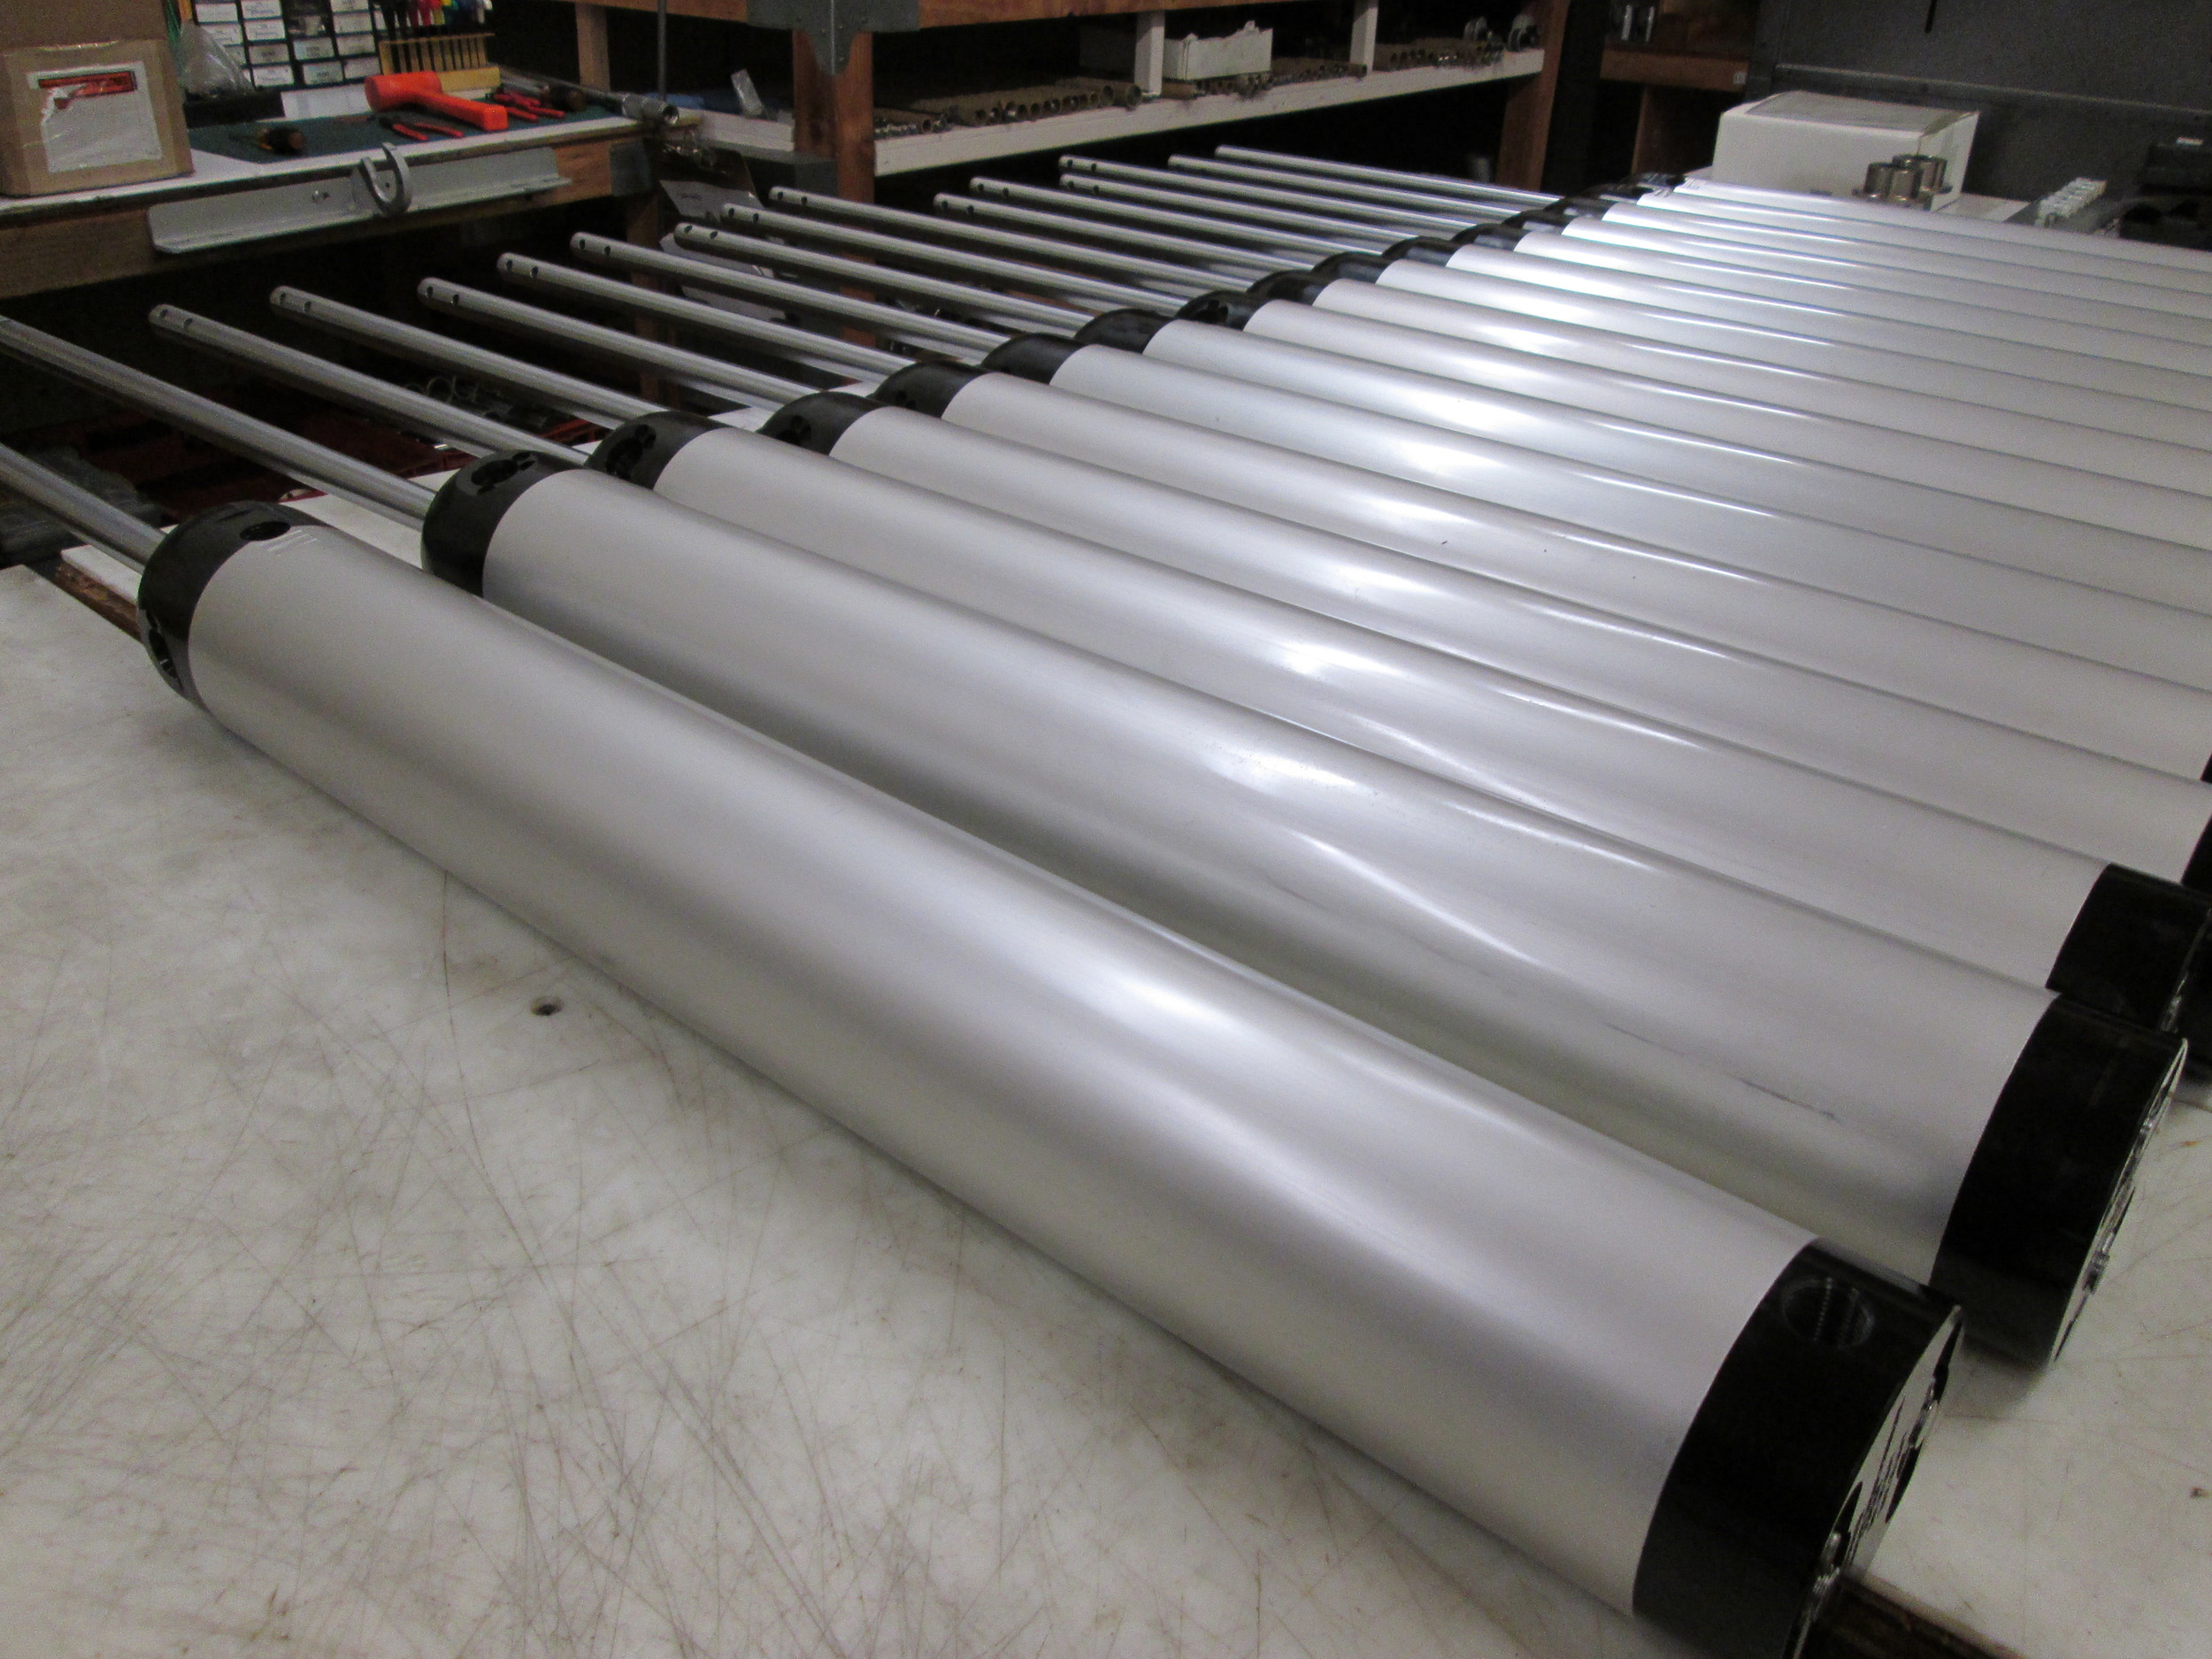 ALL ALUMINUM CONSTRUCTION WITH STAINLESS CHROME ROD